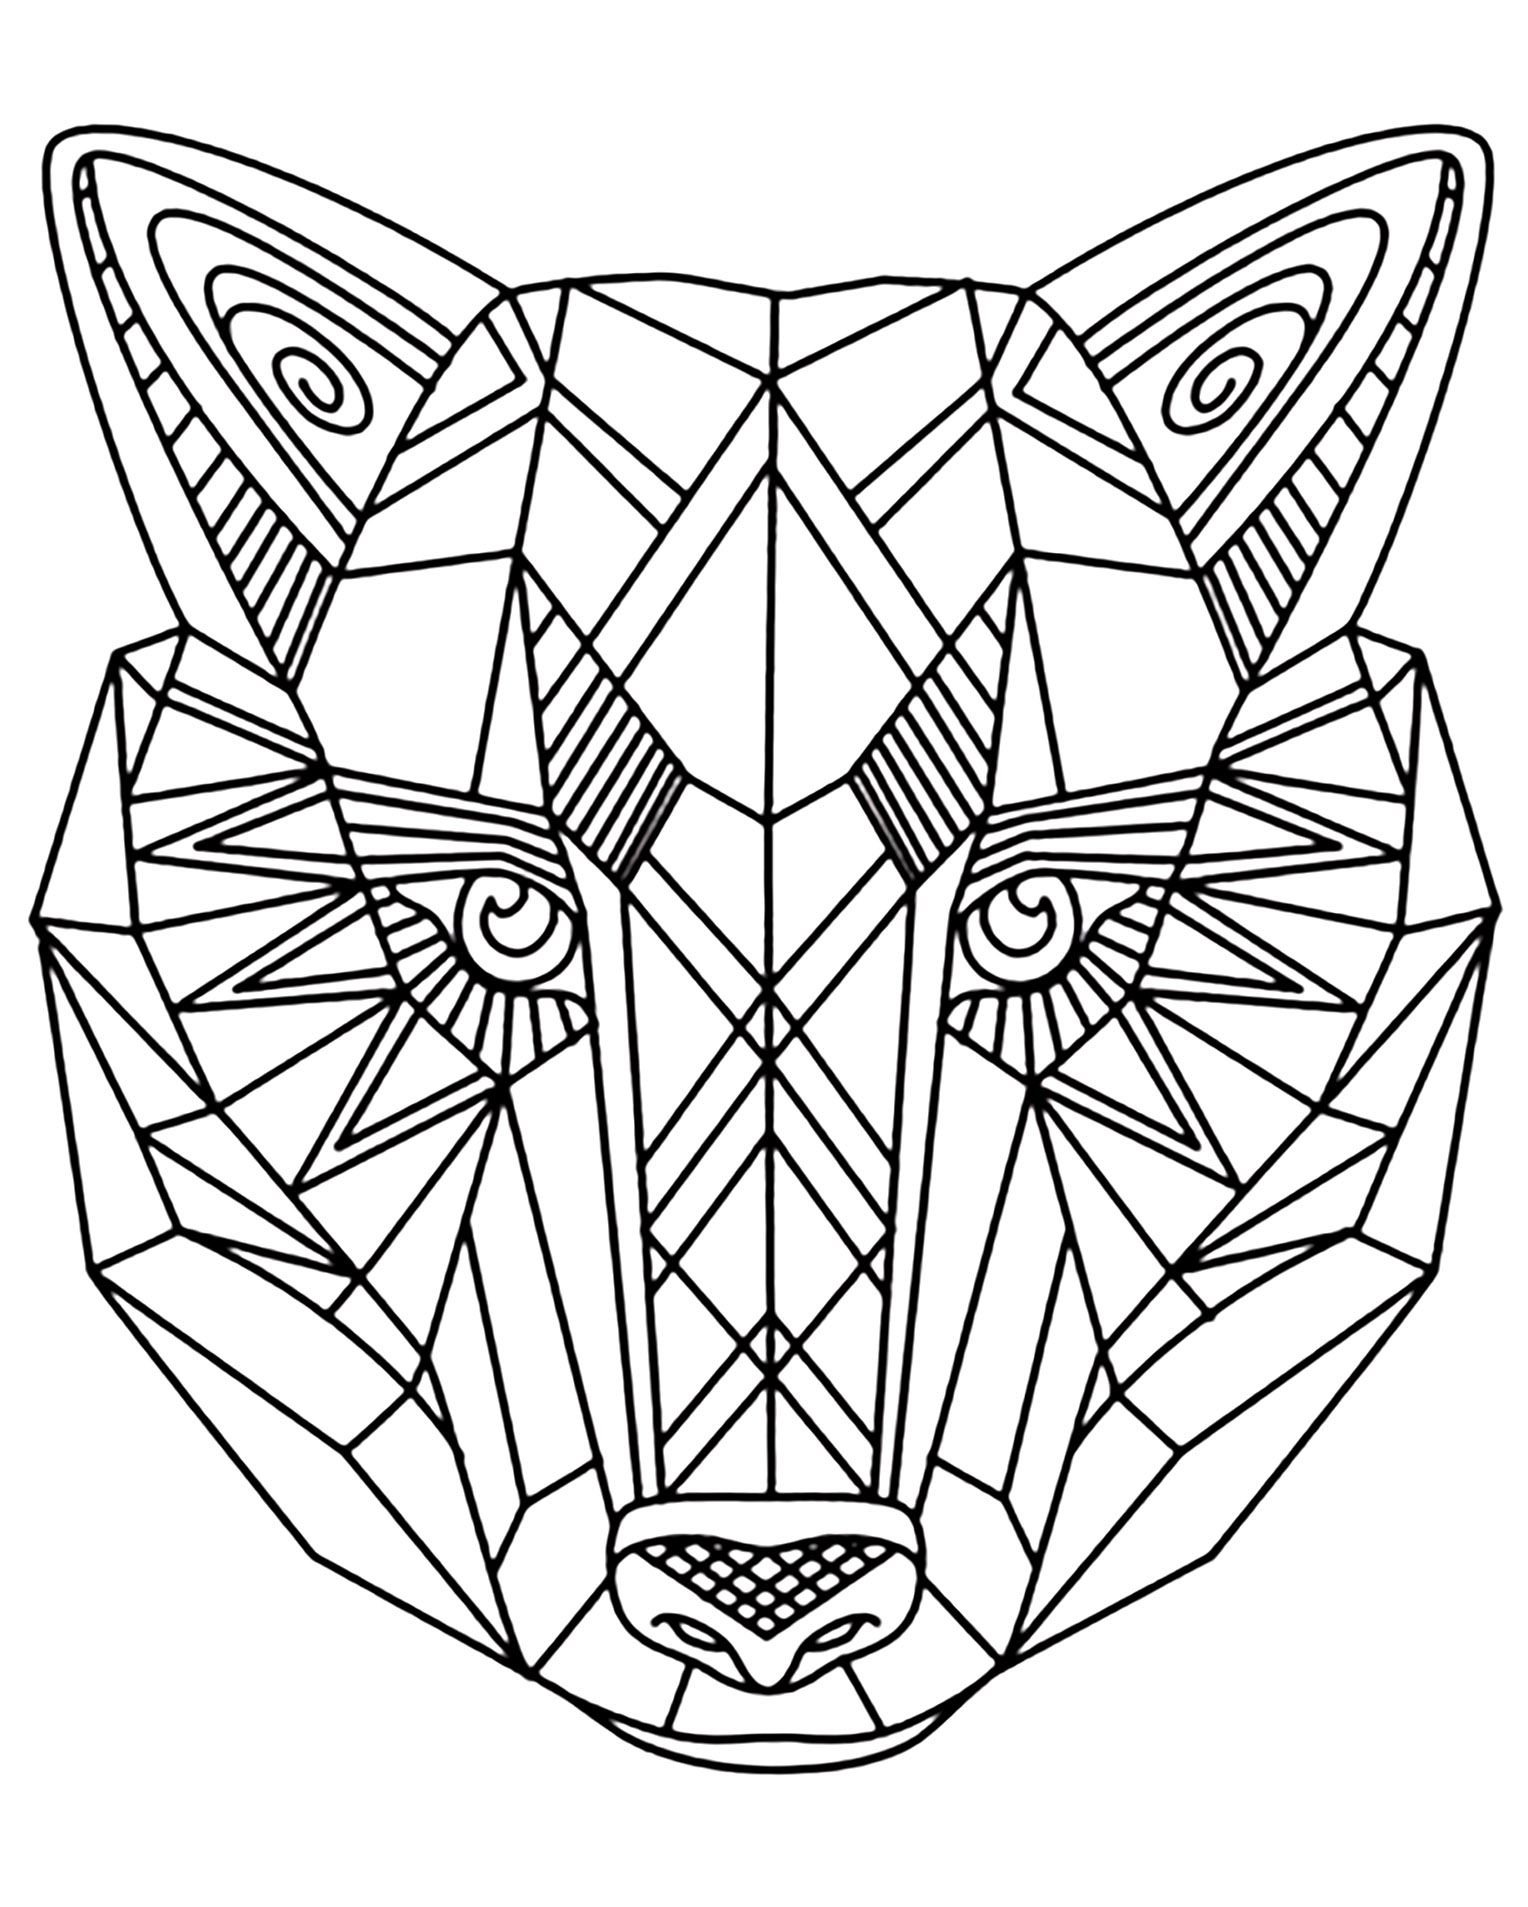 1528x1907 Incredible Wolf Coloring Pages For Adults Justcolor Image